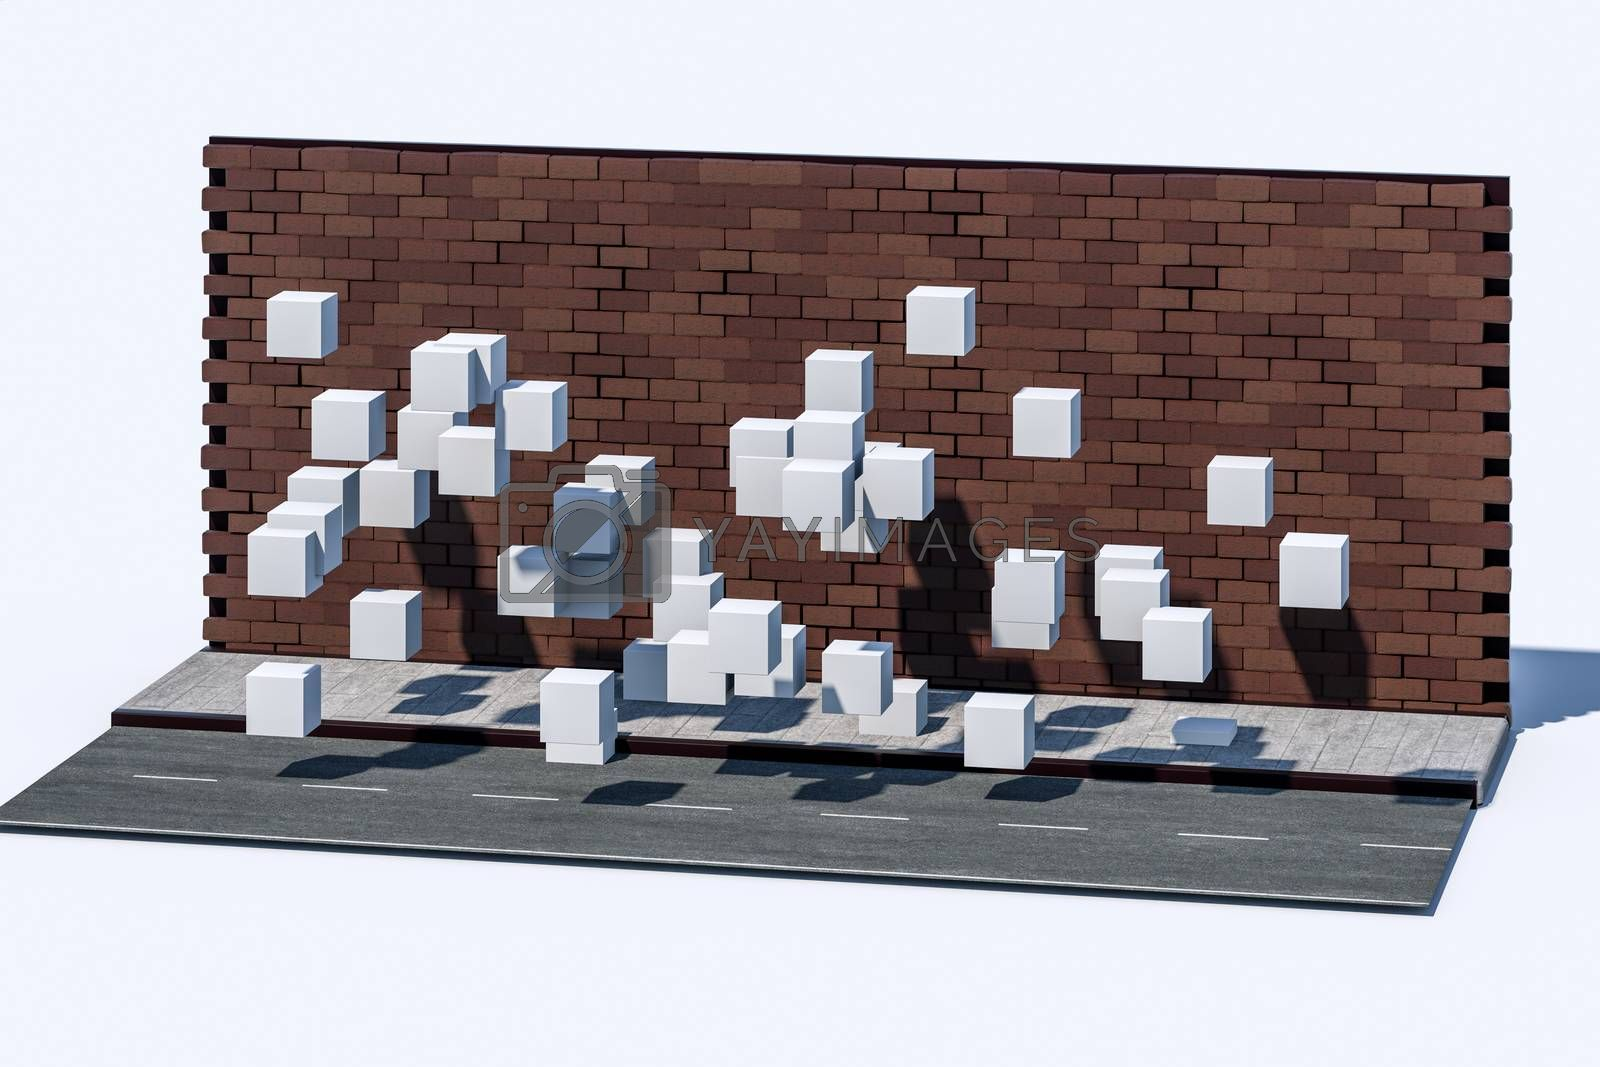 The brick wall and pitch street, 3d rendering. by vinkfan